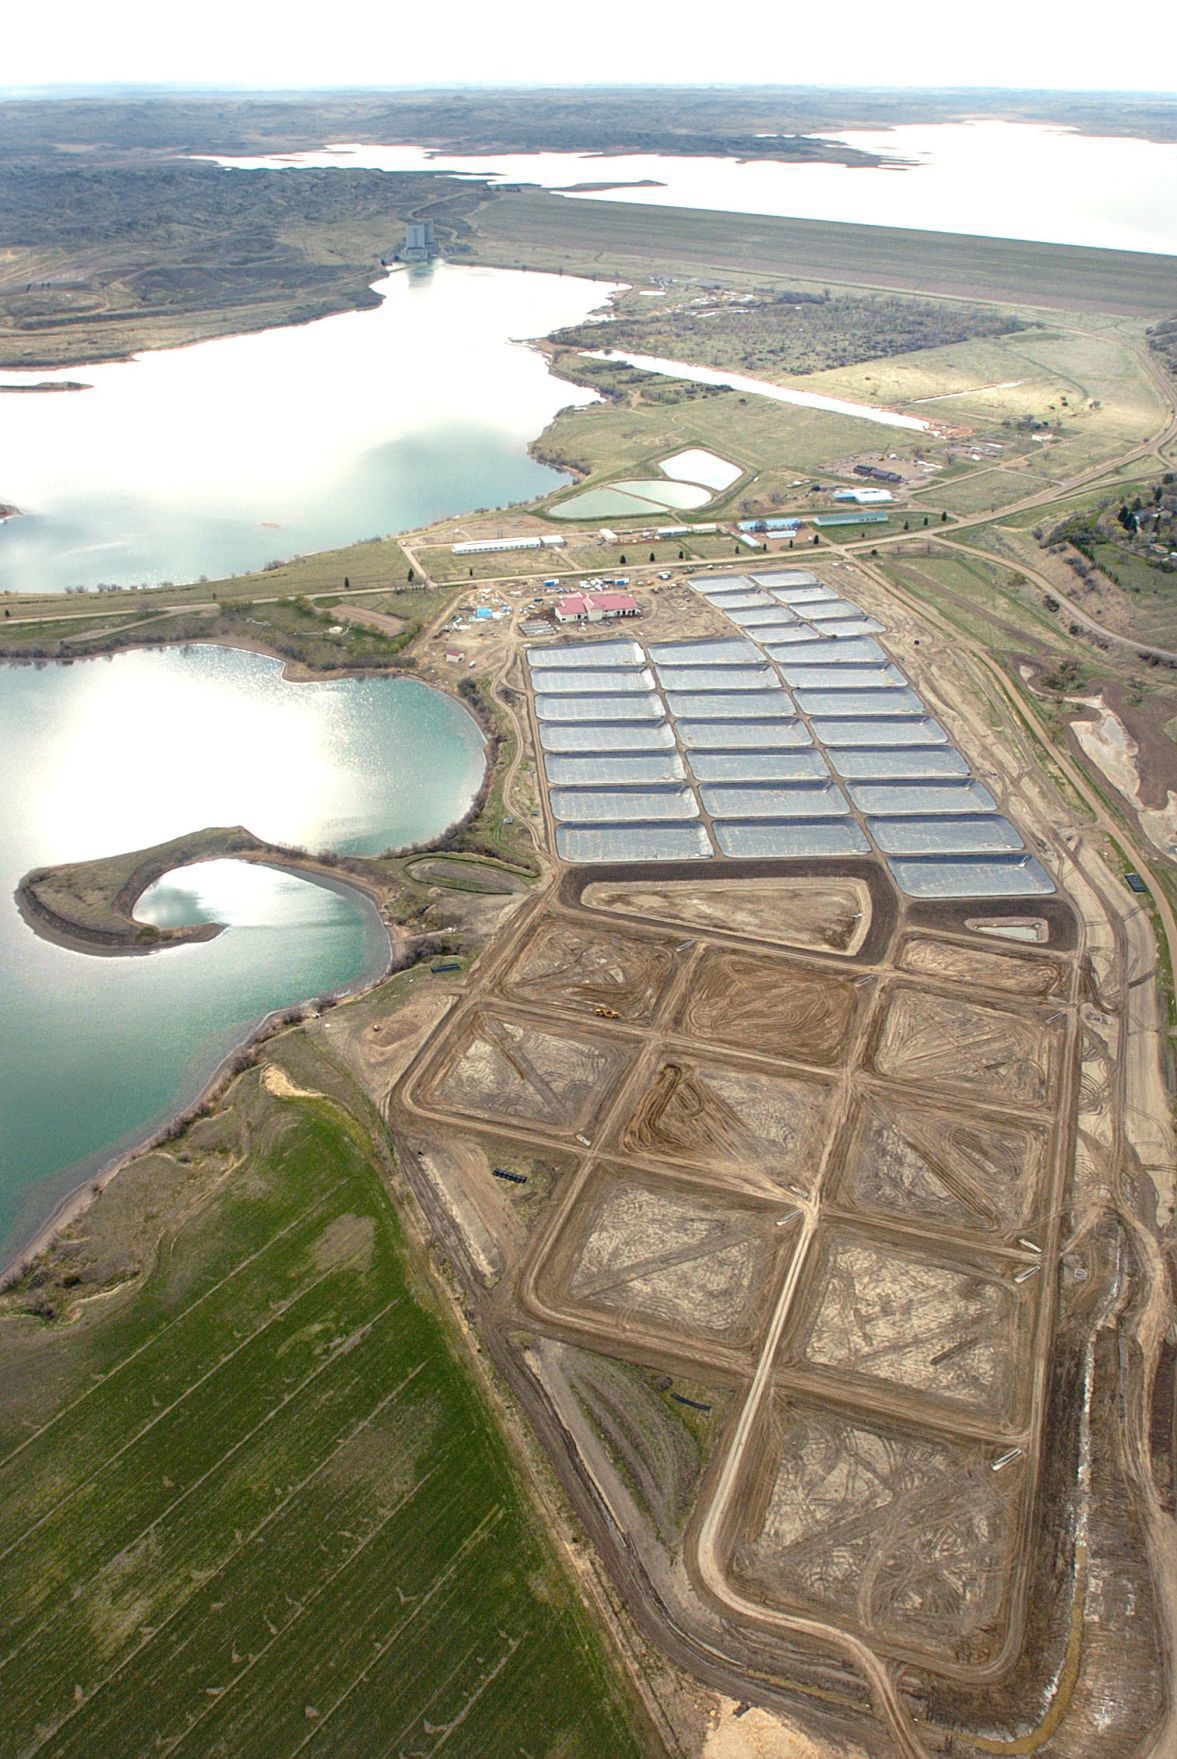 Bill would aid fort peck fish hatchery for Fish hatchery jobs